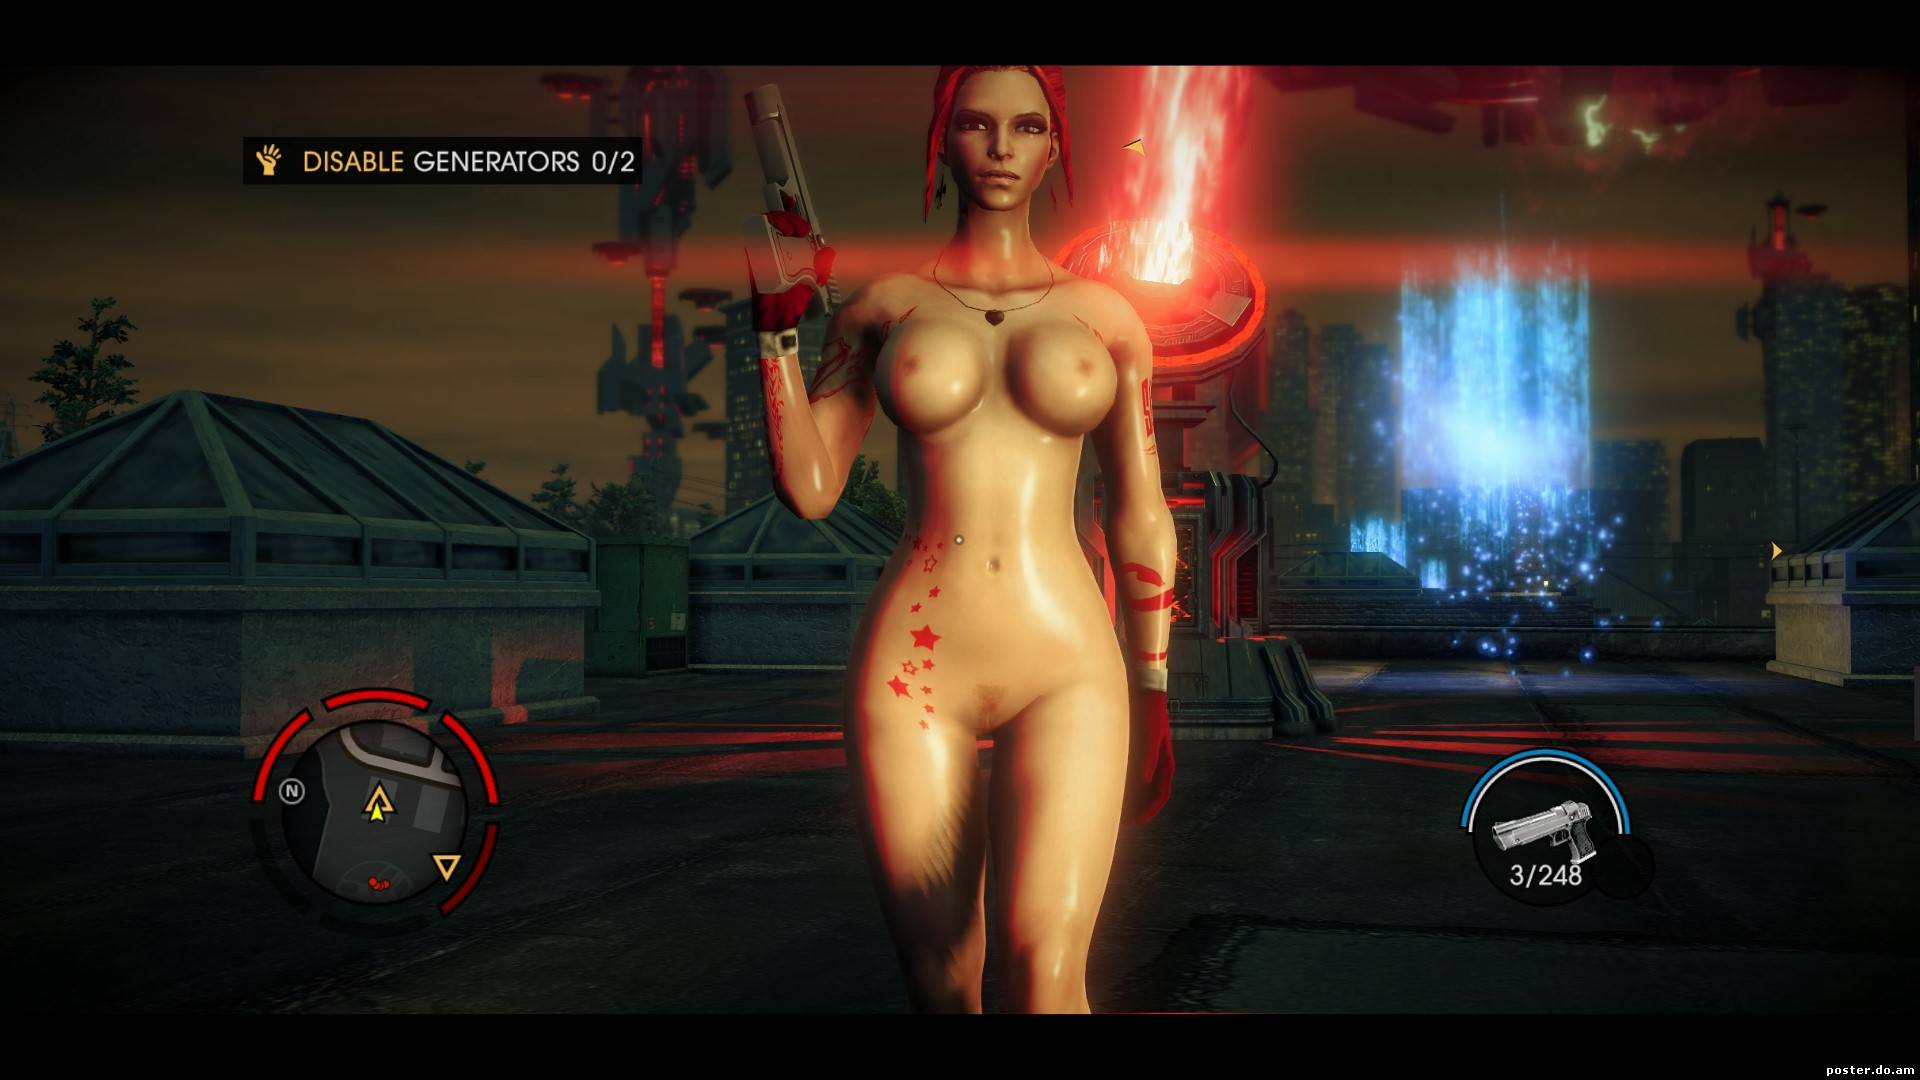 Saints row iv hentia xxx exposed comics